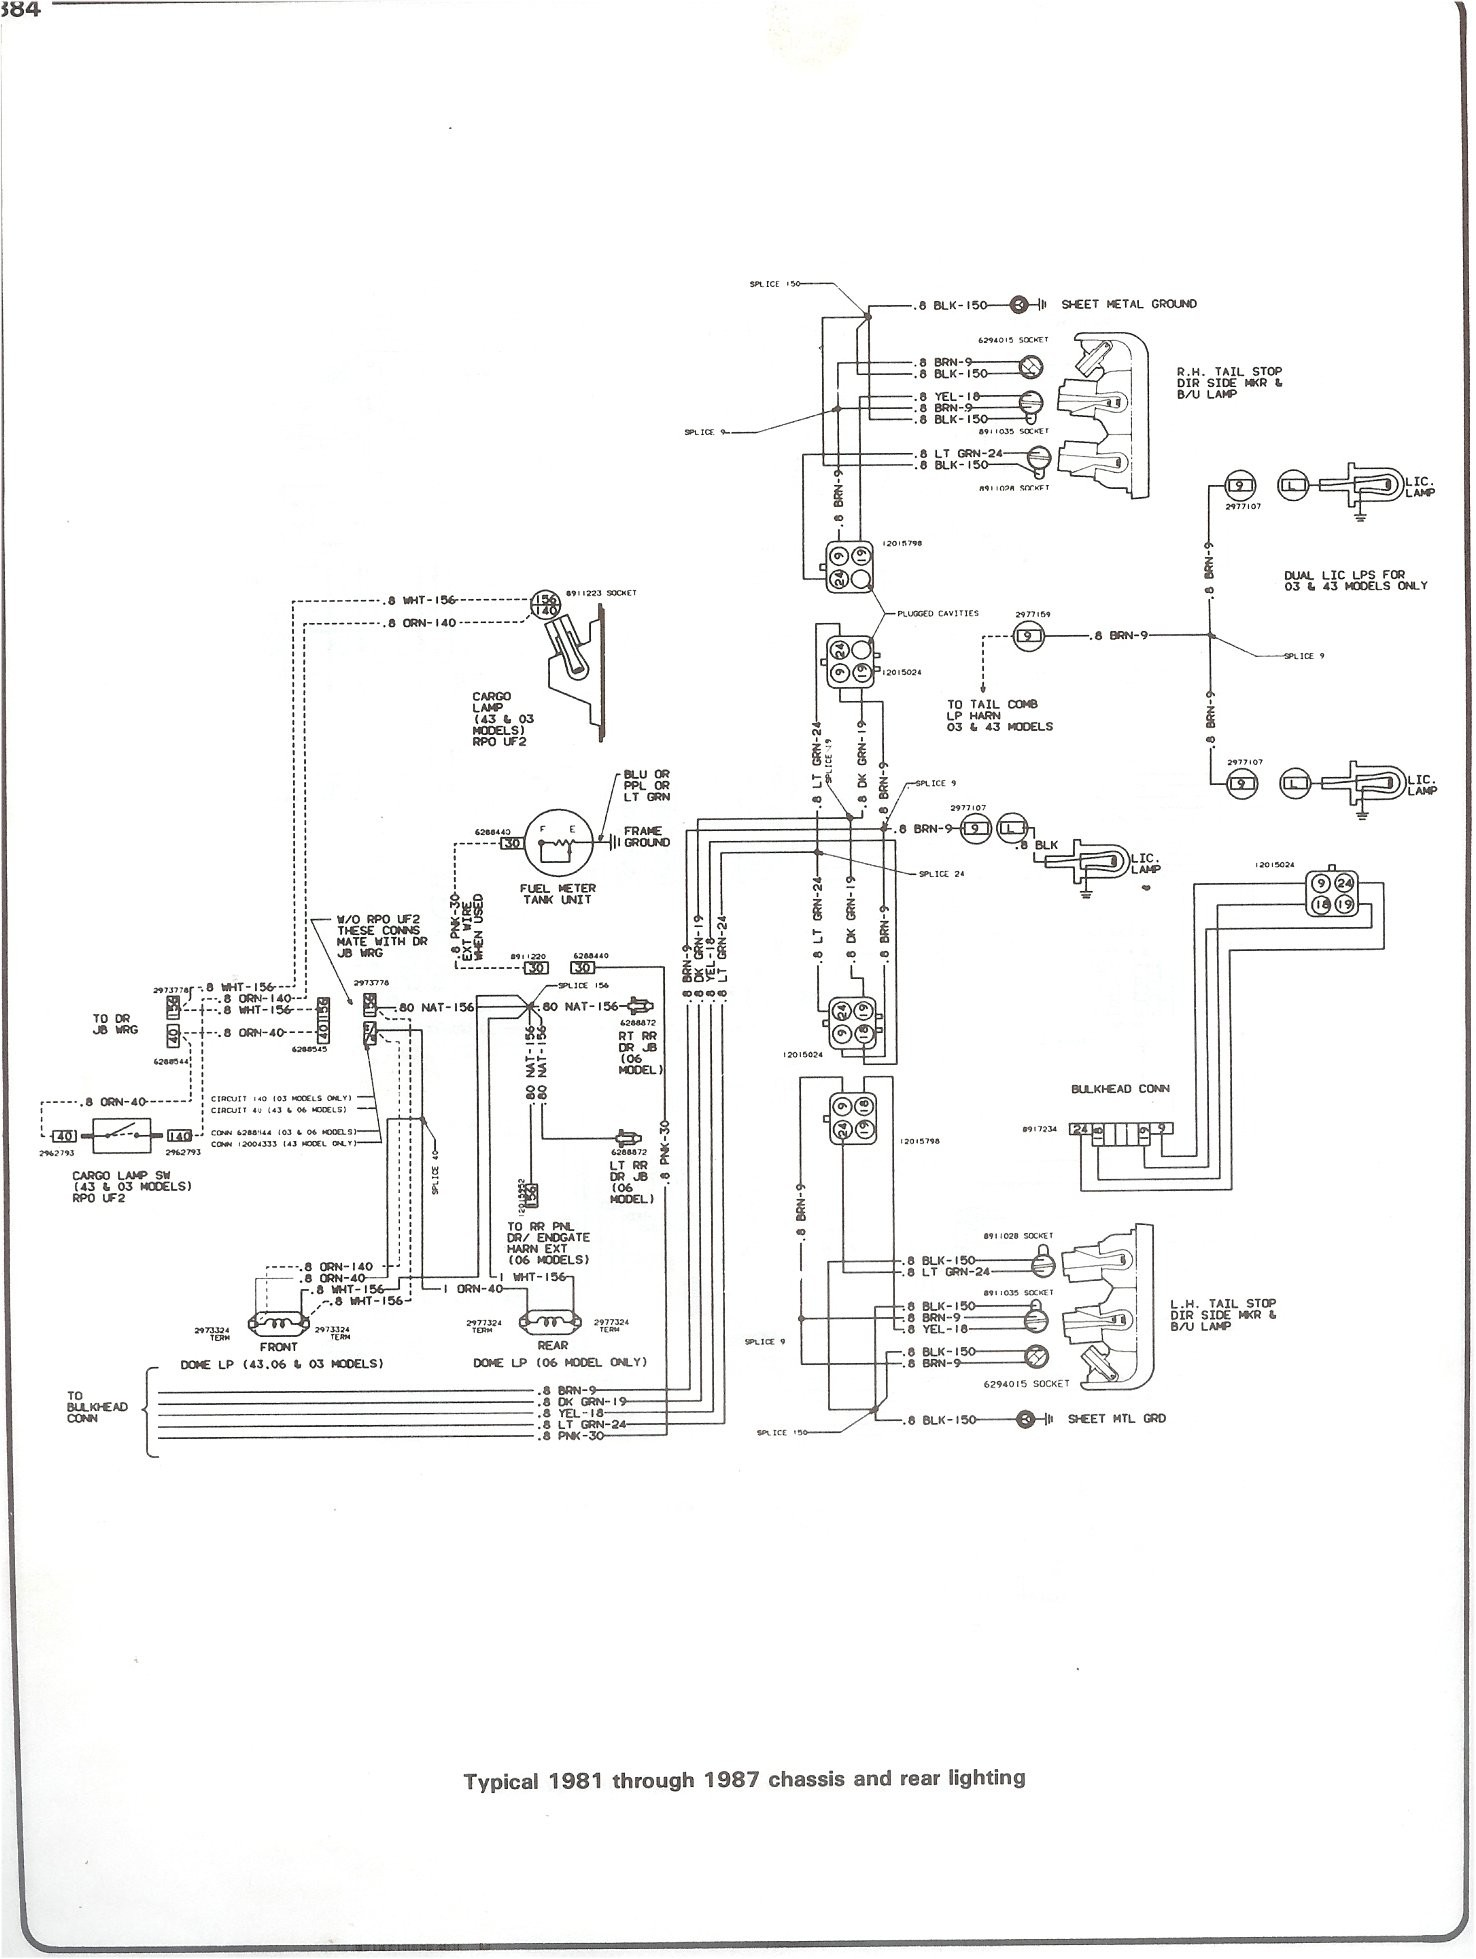 Auto Wiring Diagram For Mitsubishi Galant